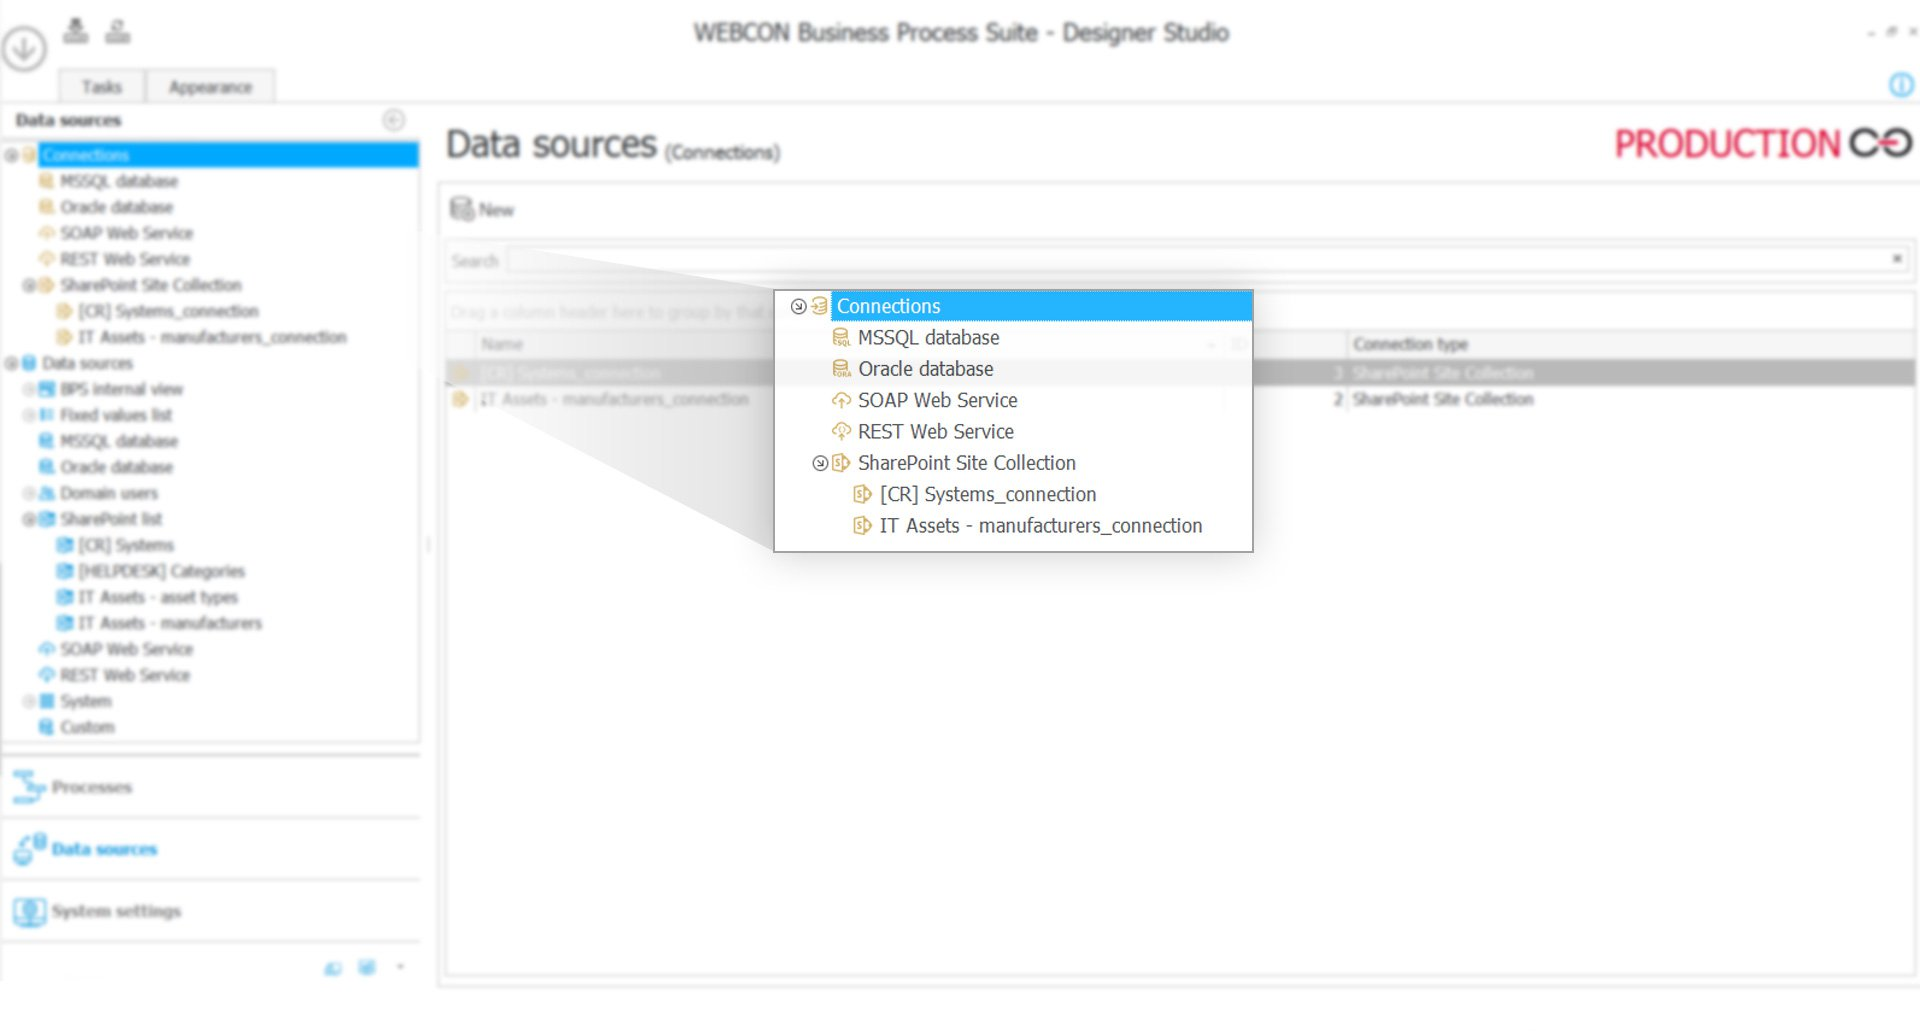 WEBCON BPS integration